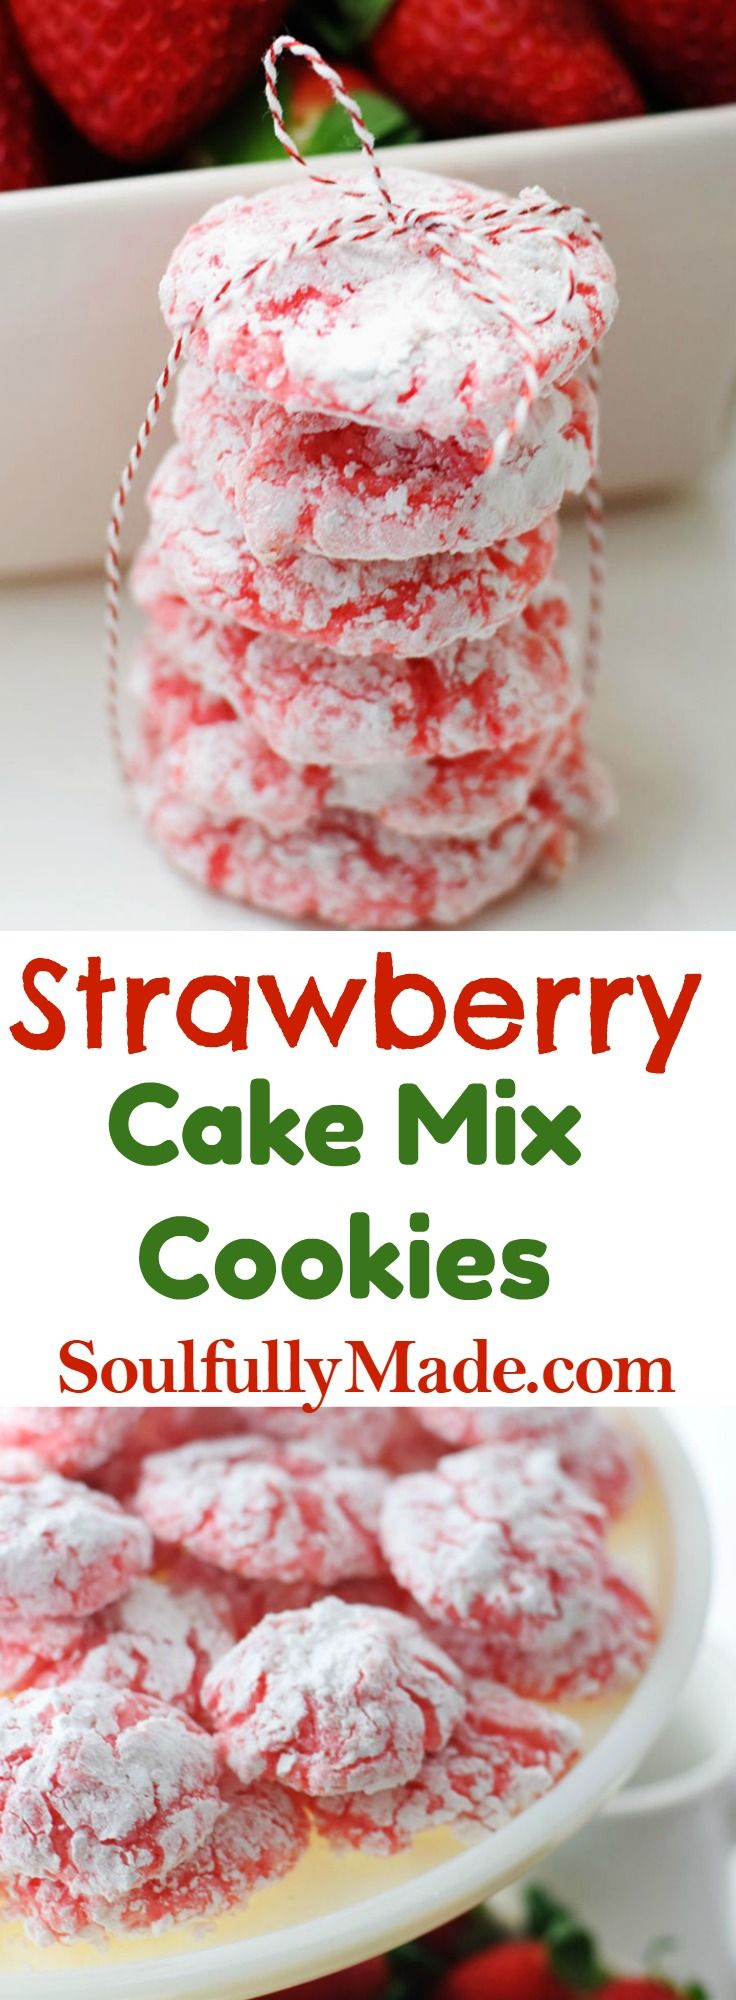 Strawberry Cake Mix Cookies are soft, chewy pillows bursting with strawberry flavor. Made with 4 simple ingredients, these cookies are simply delicious! #christmascookies #soulfullymade